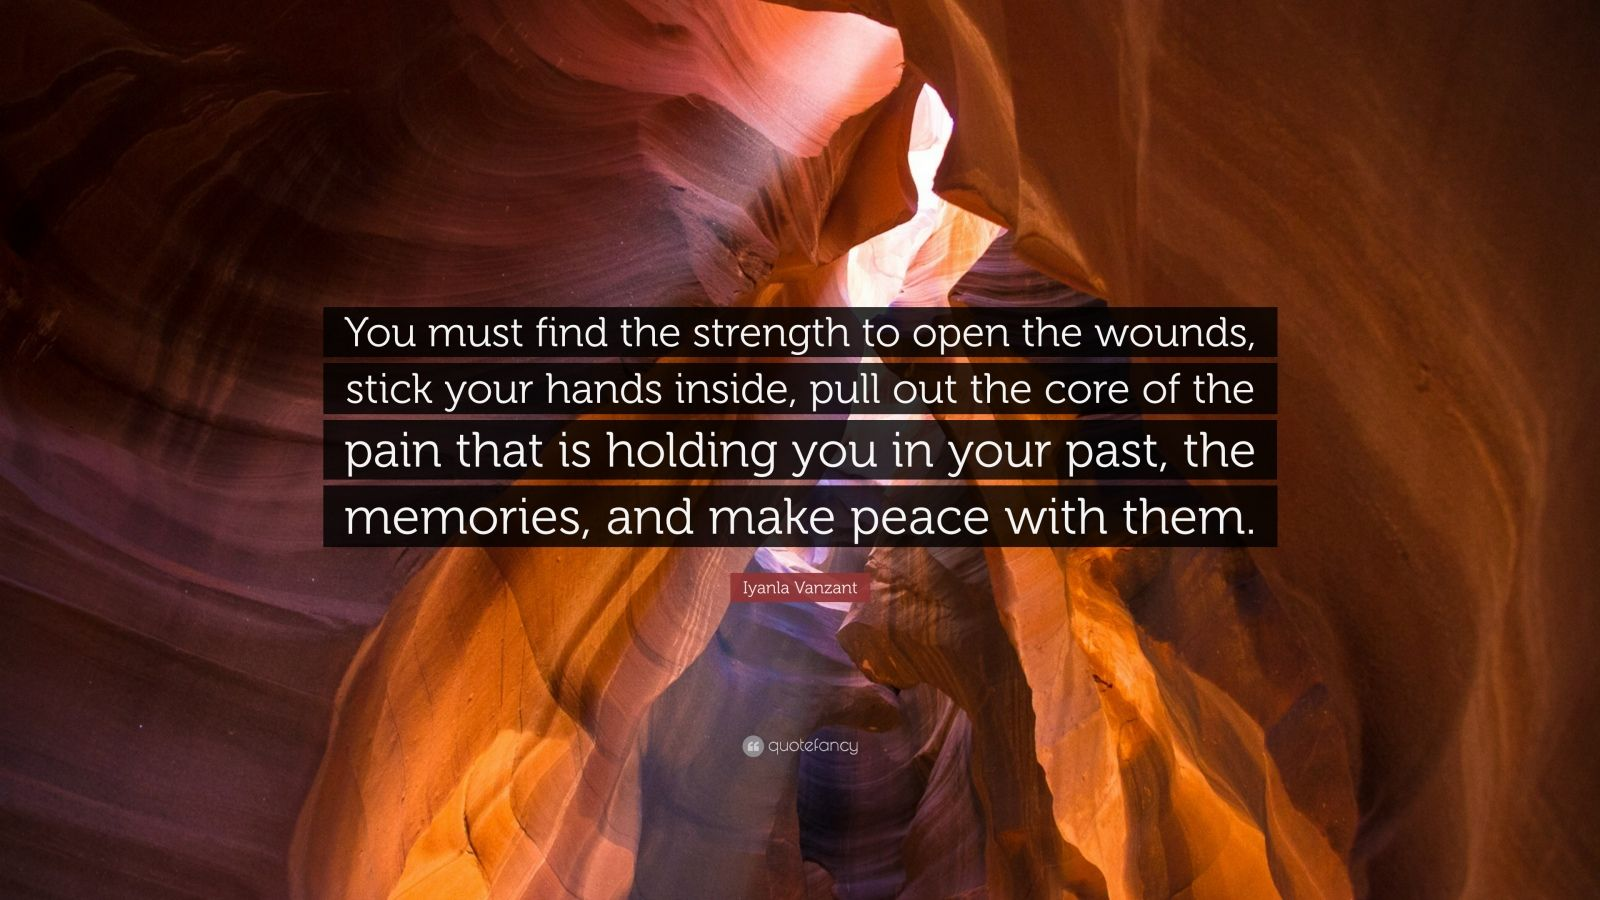 "Iyanla Vanzant Quote: ""You must find the strength to open the wounds, stick your hands inside, pull out the core of the pain that is holding you in your past, the memories, and make peace with them."""